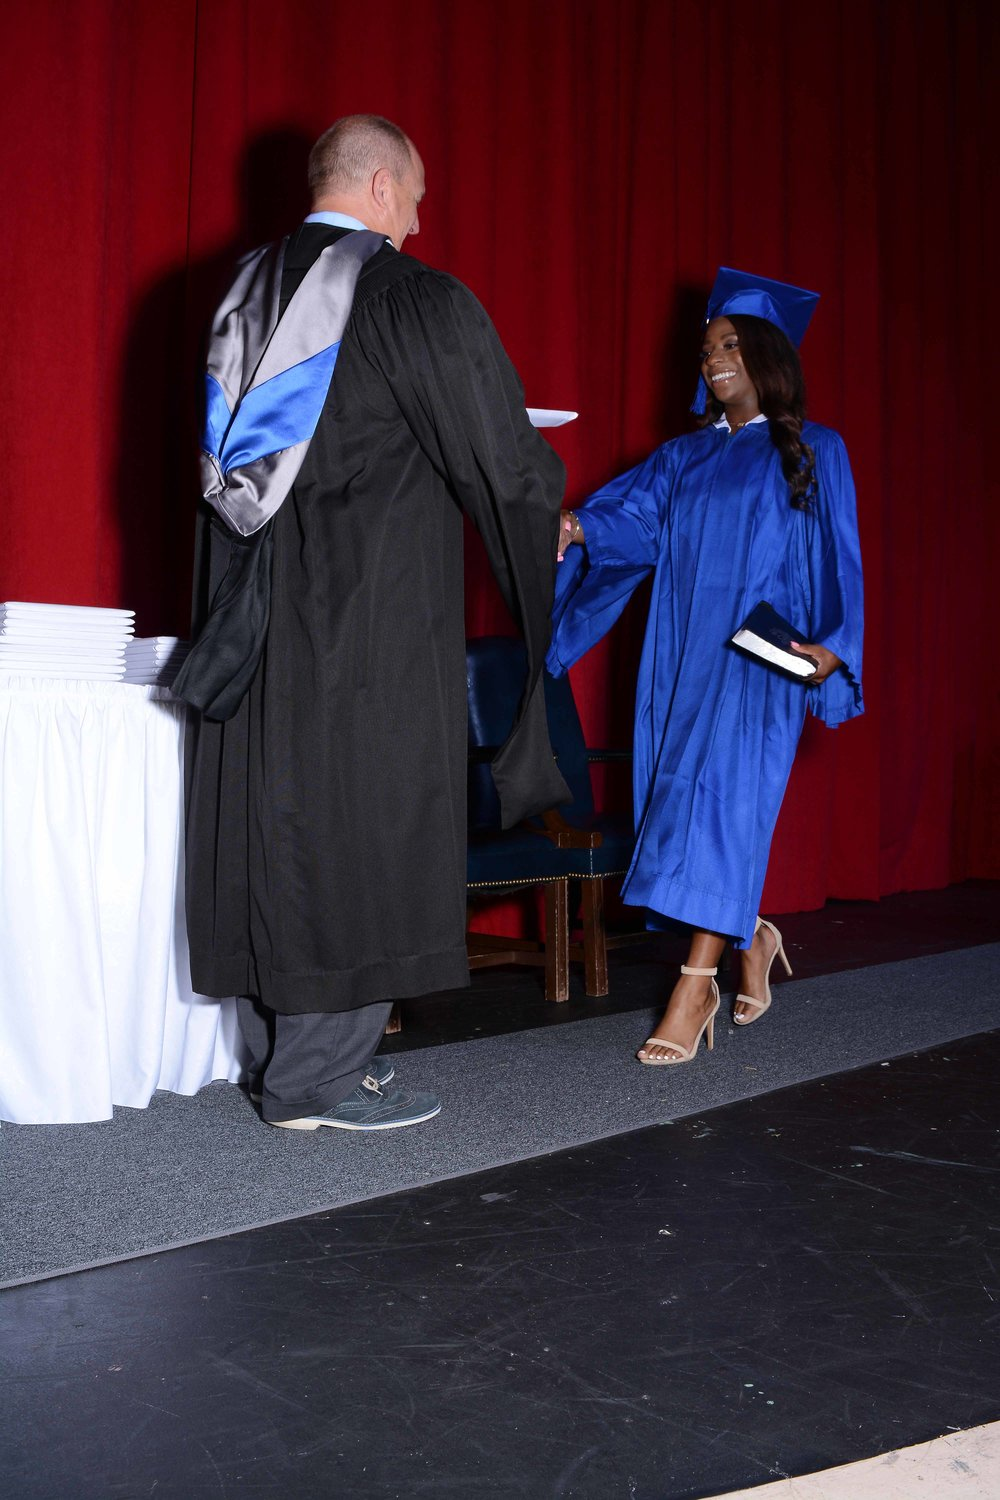 May14 Commencement106.jpg